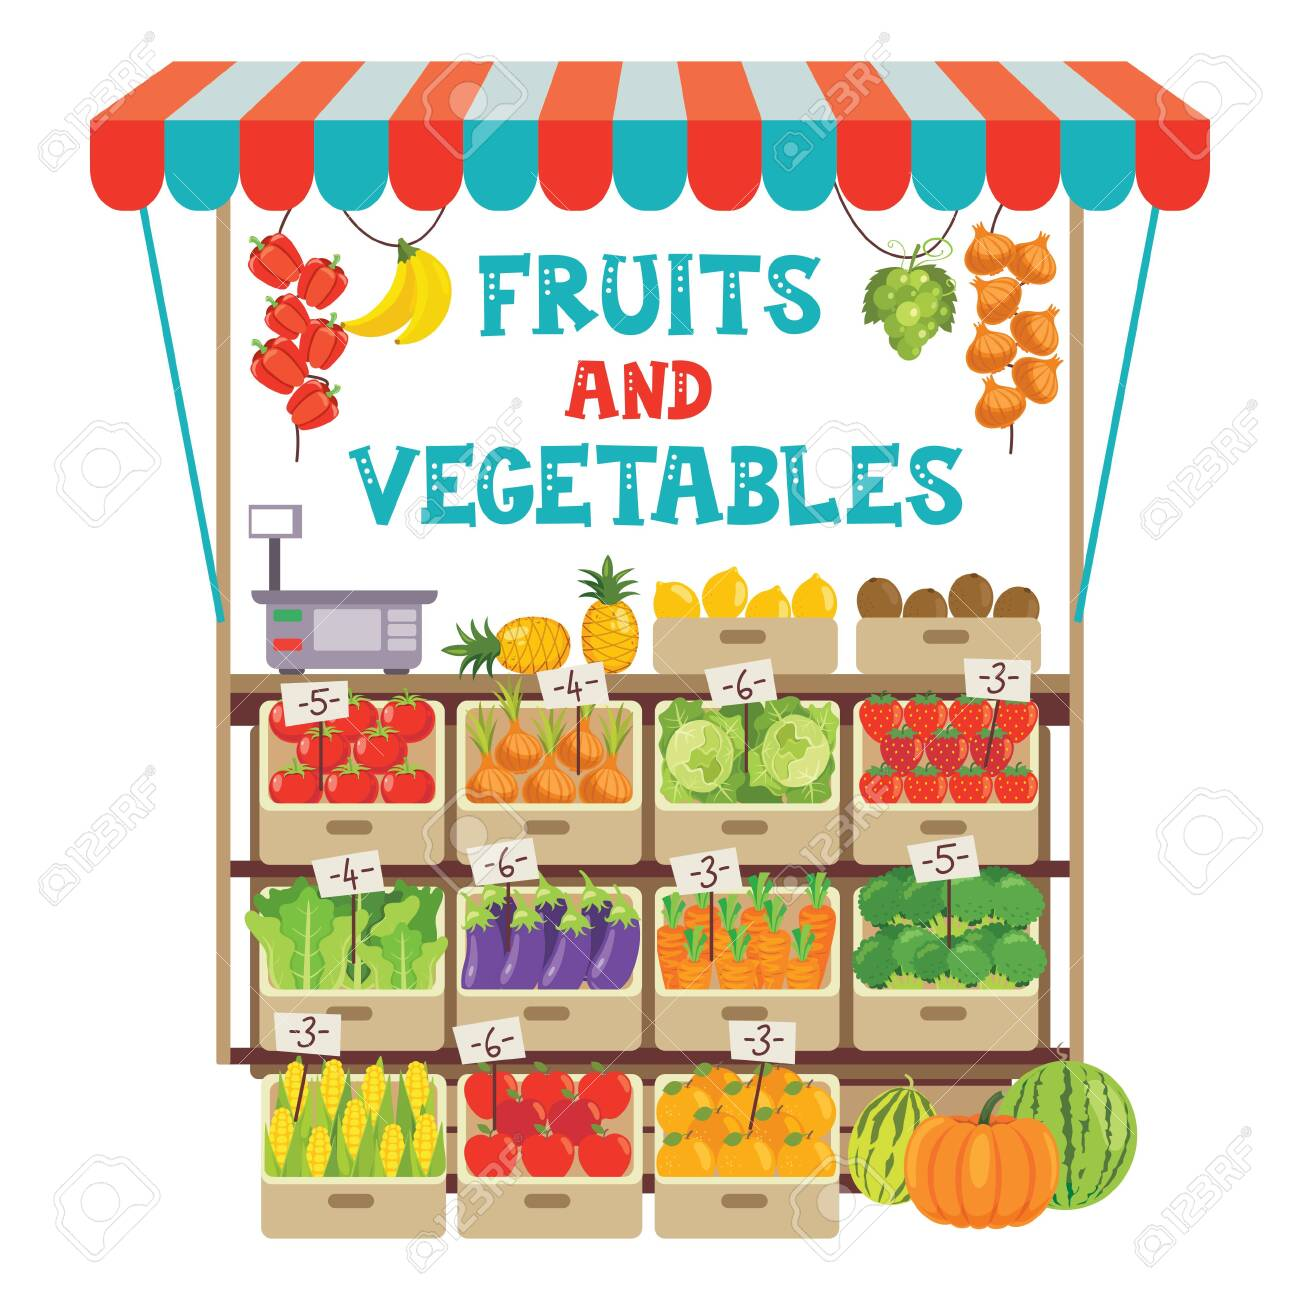 Green Grocer Shop With Various Fruits And Vegetables - 147786814